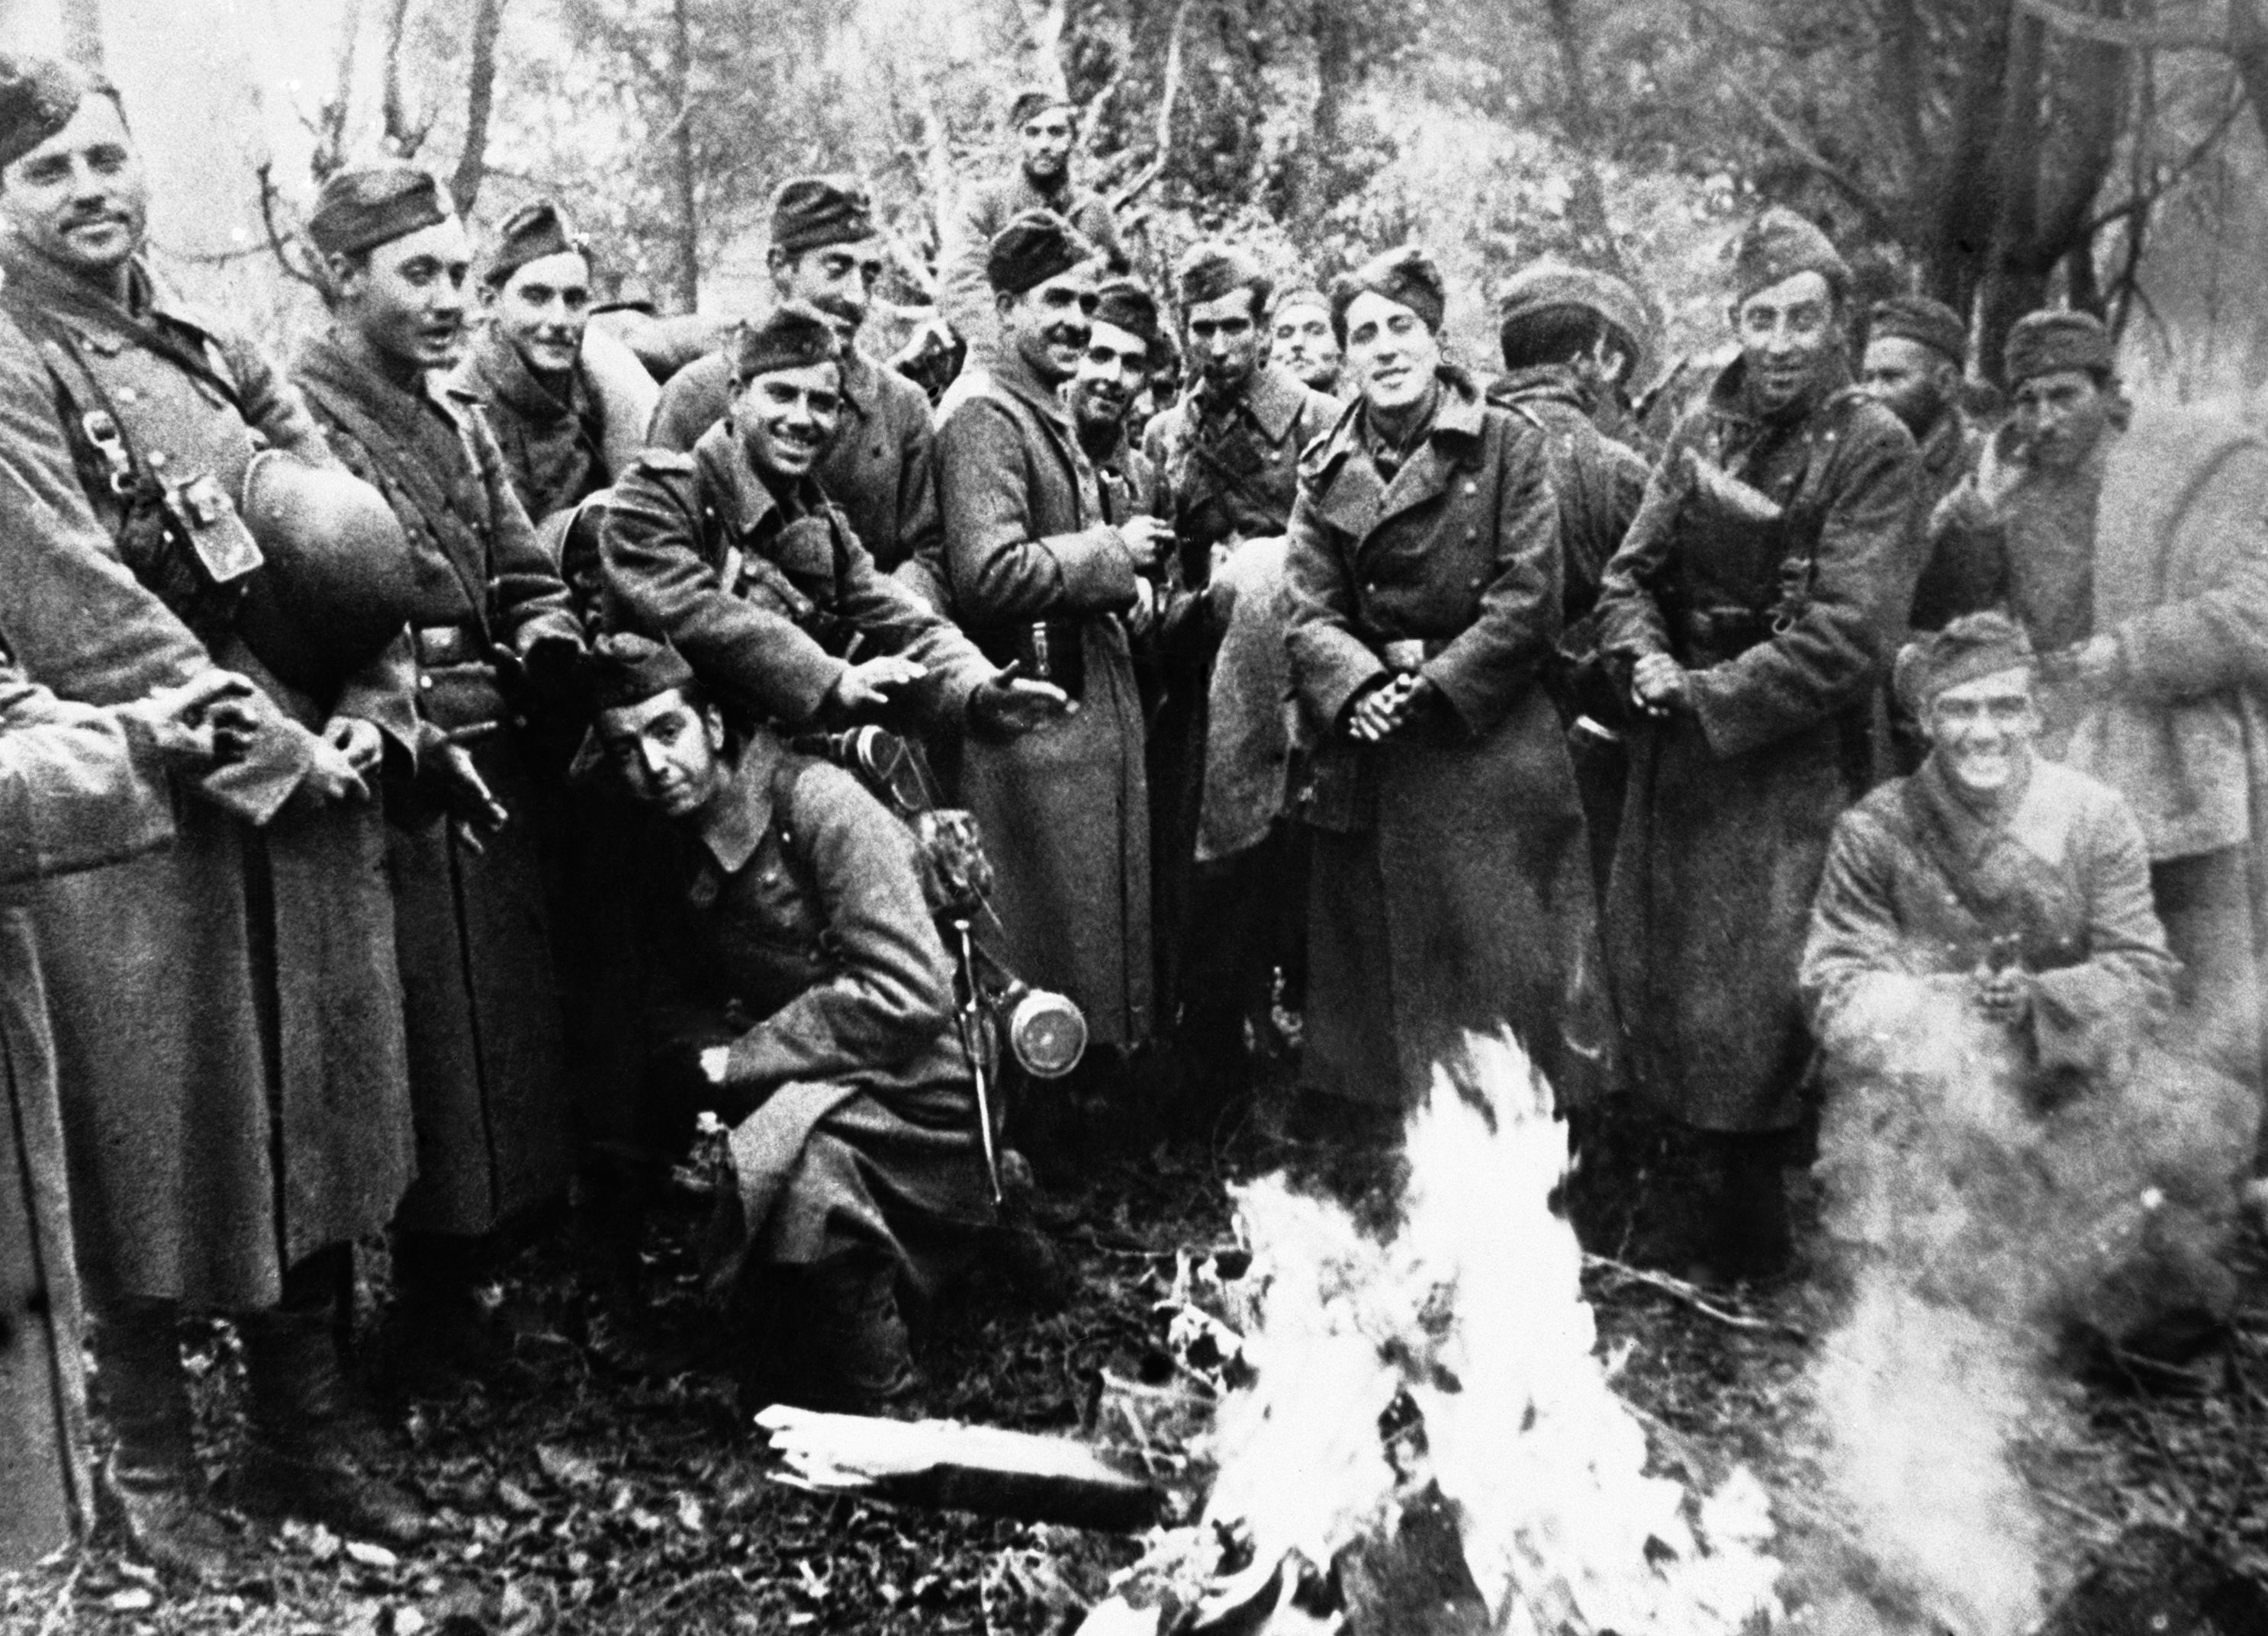 Members of one of the volunteer Spanish Blue Divisions, serving with the Nazis, grouped round a fire on the Moscow front on Dec. 15, 1941. It was stated that the divisions from Spain are feeling the cold tremendously in Russia and are now literally blue with cold. (AP Photo)